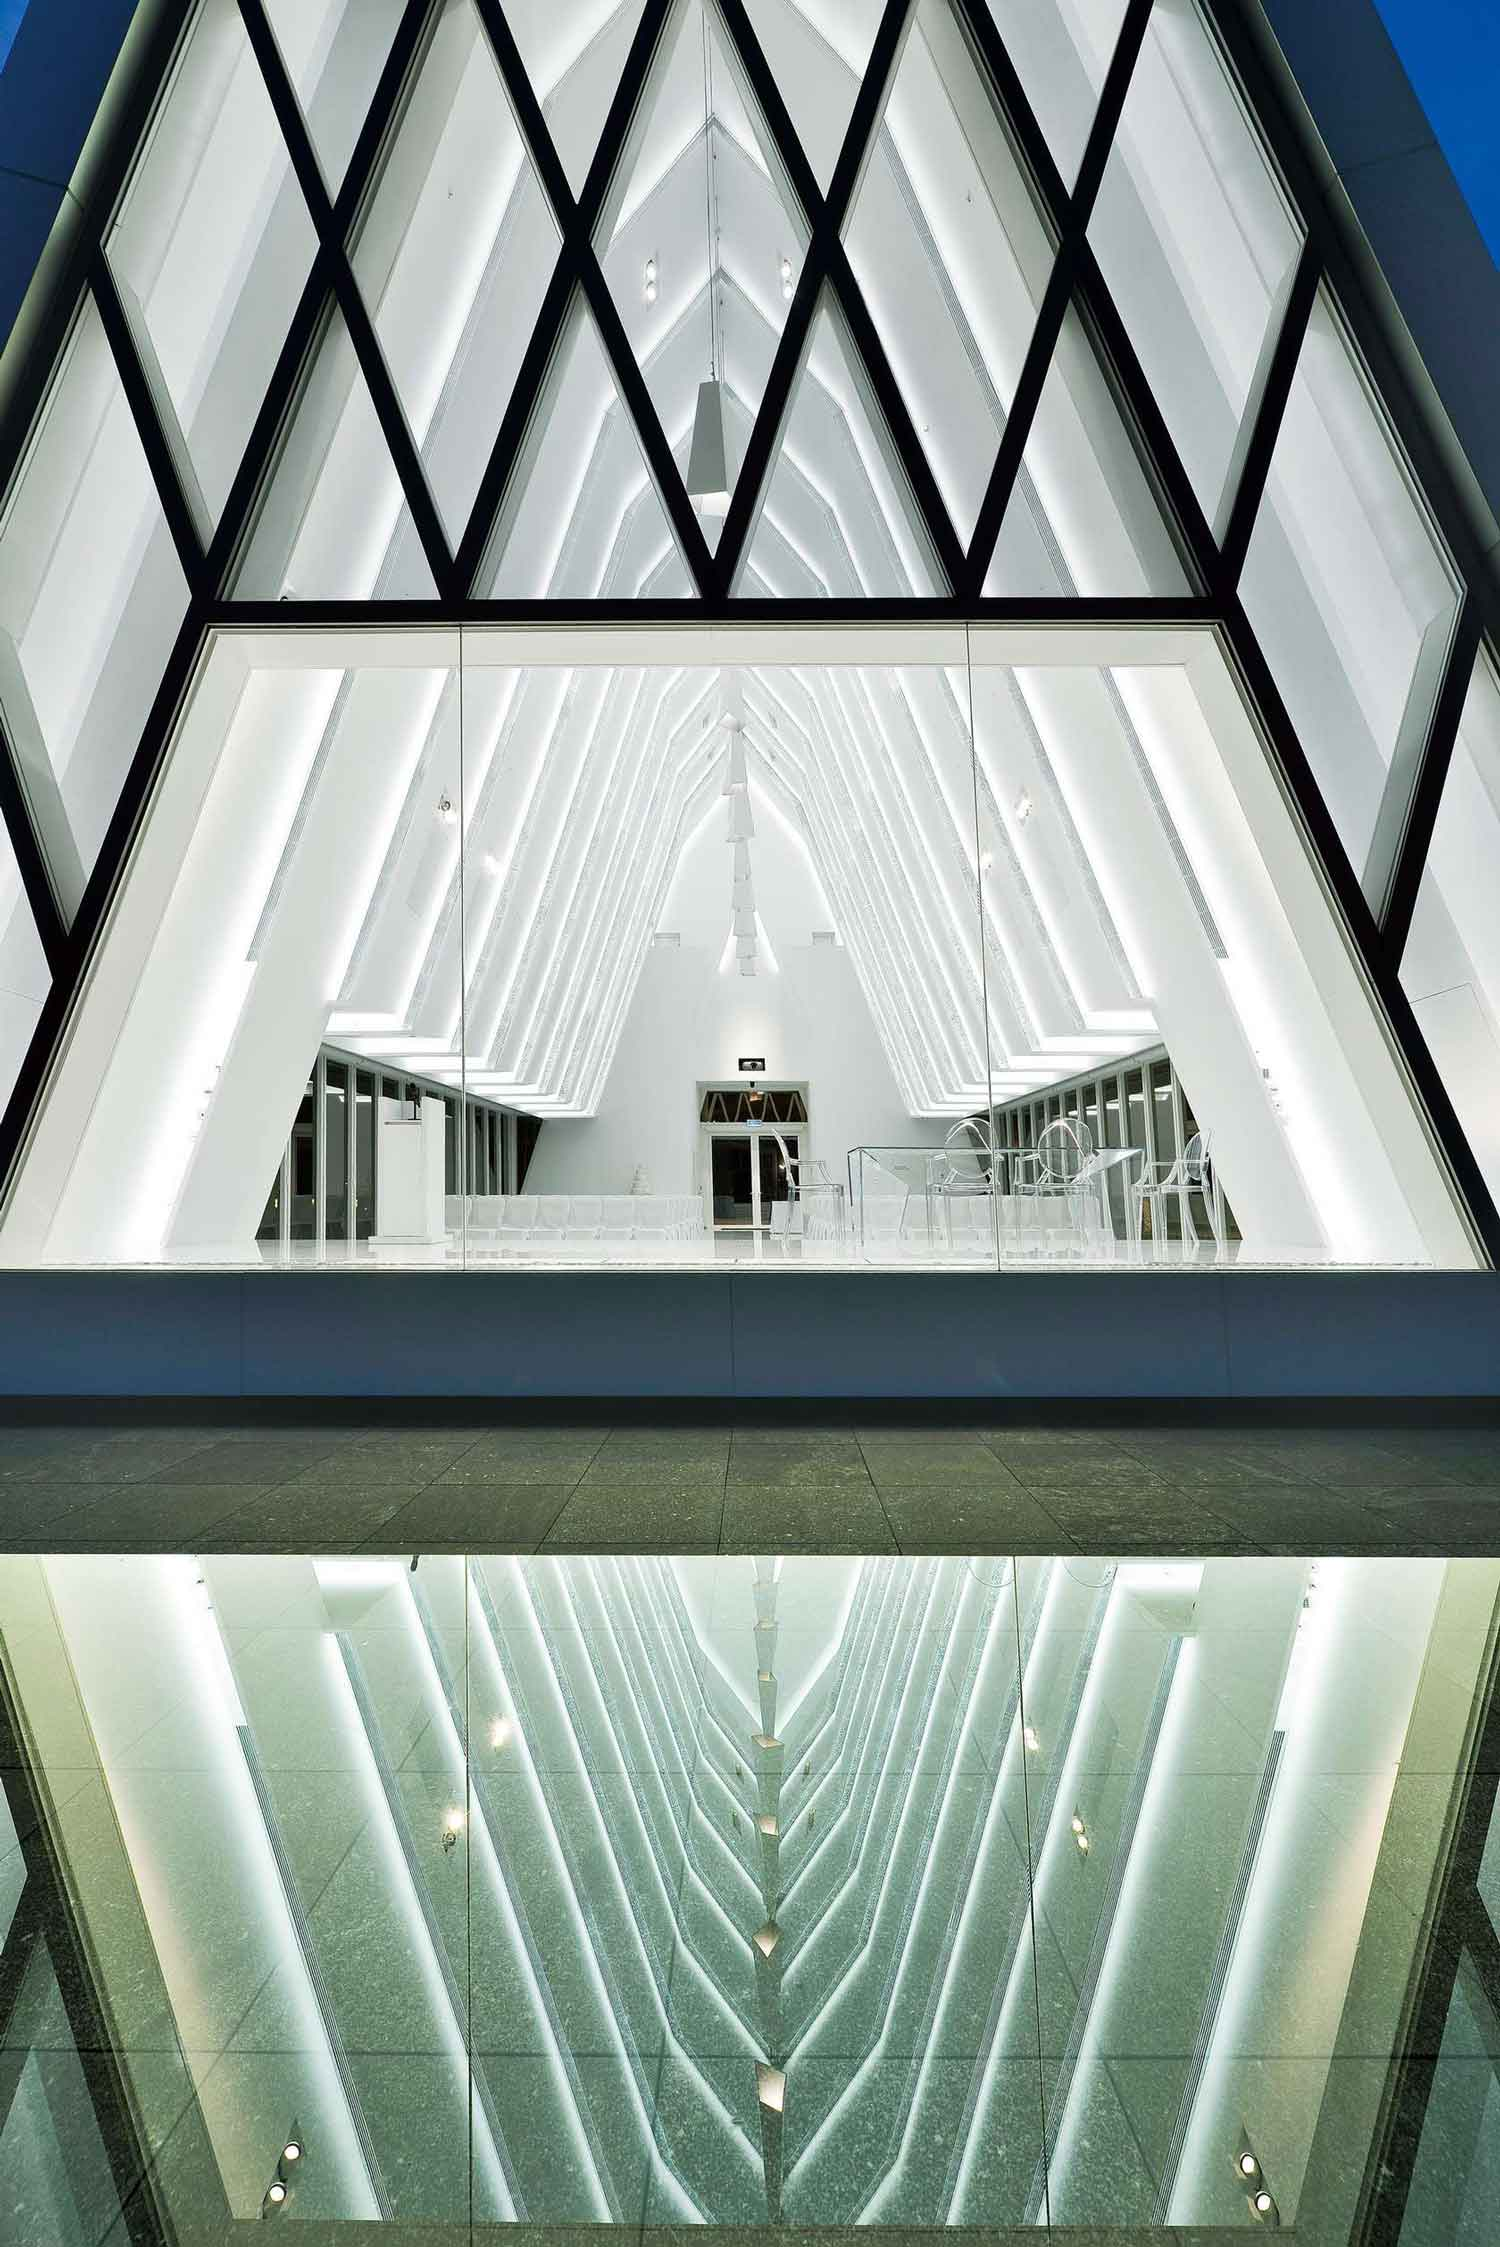 The White Chapel in Hong Kong by Danny Cheng | Yellowtrace